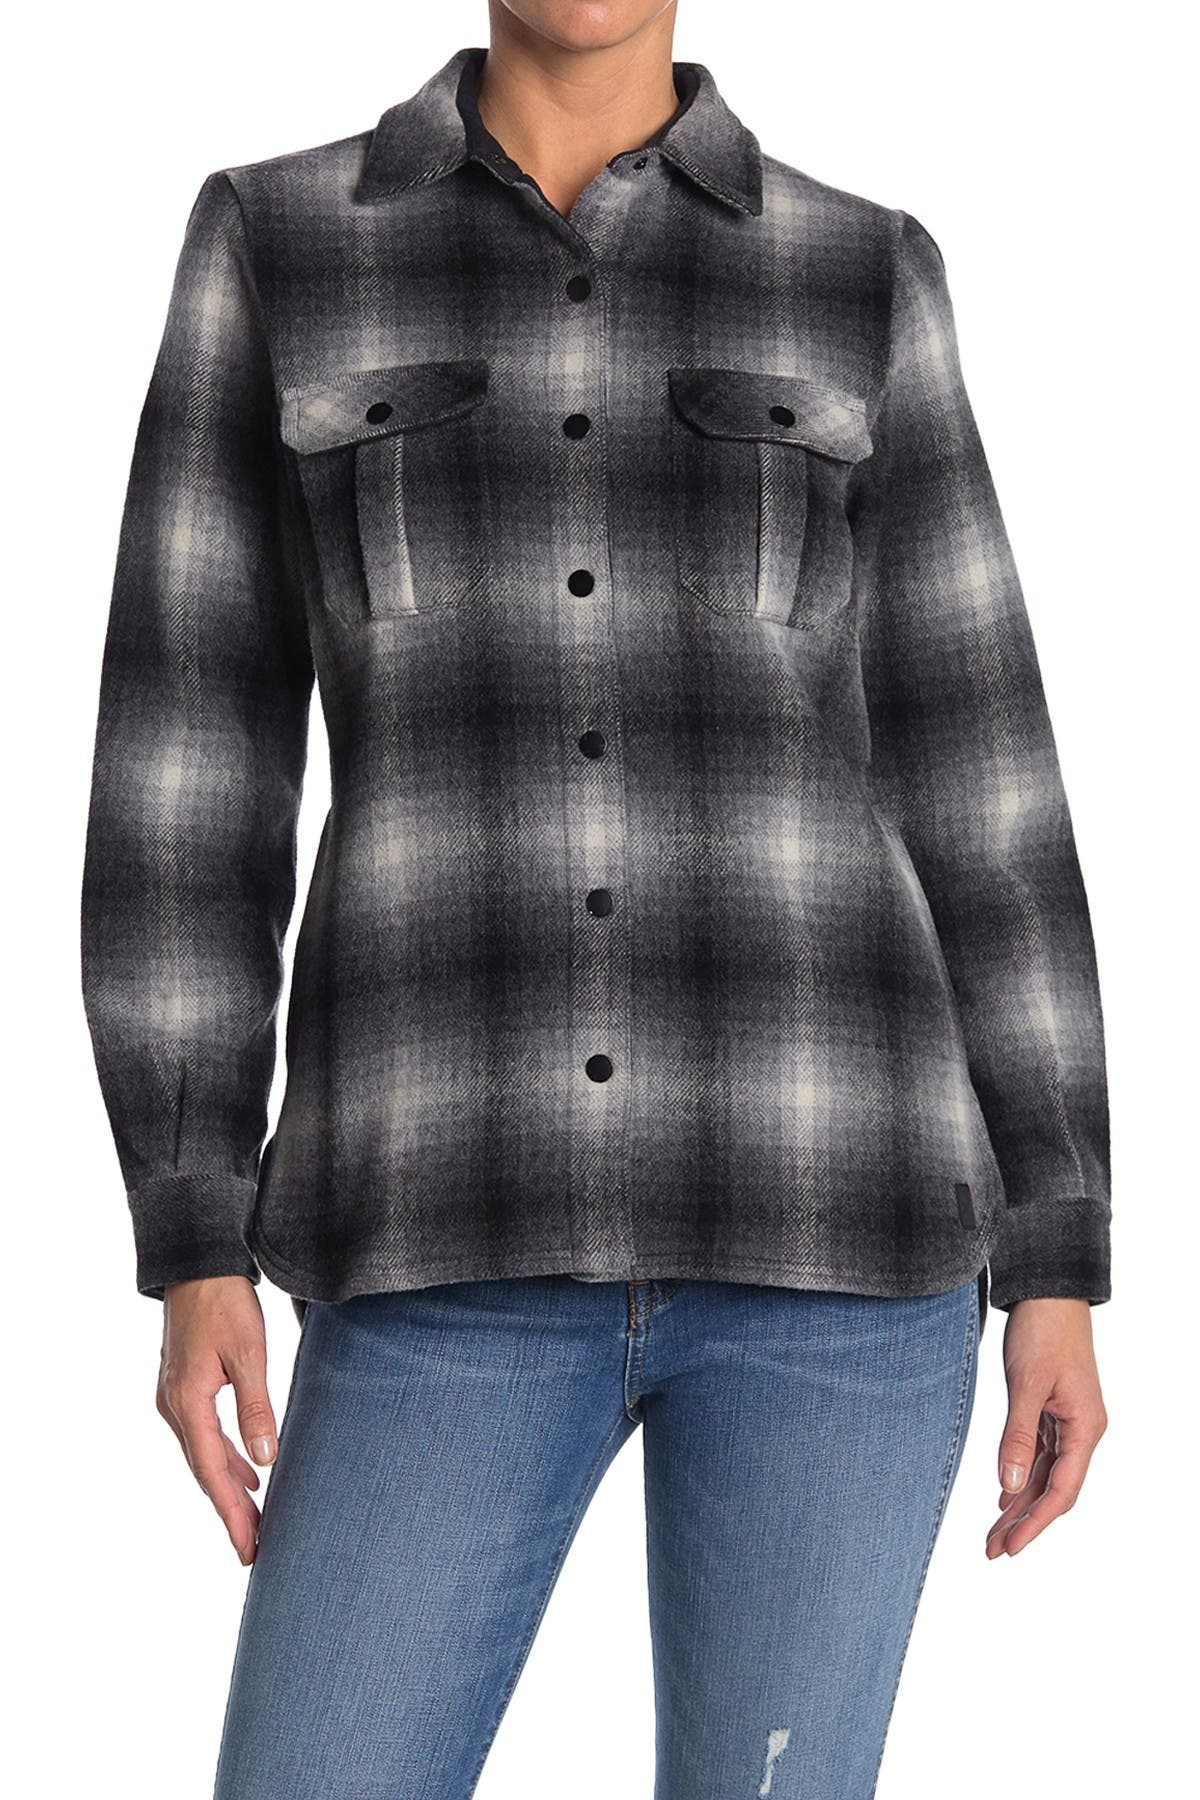 Image of SmartWool Anchor Line Plaid Shirt Jacket